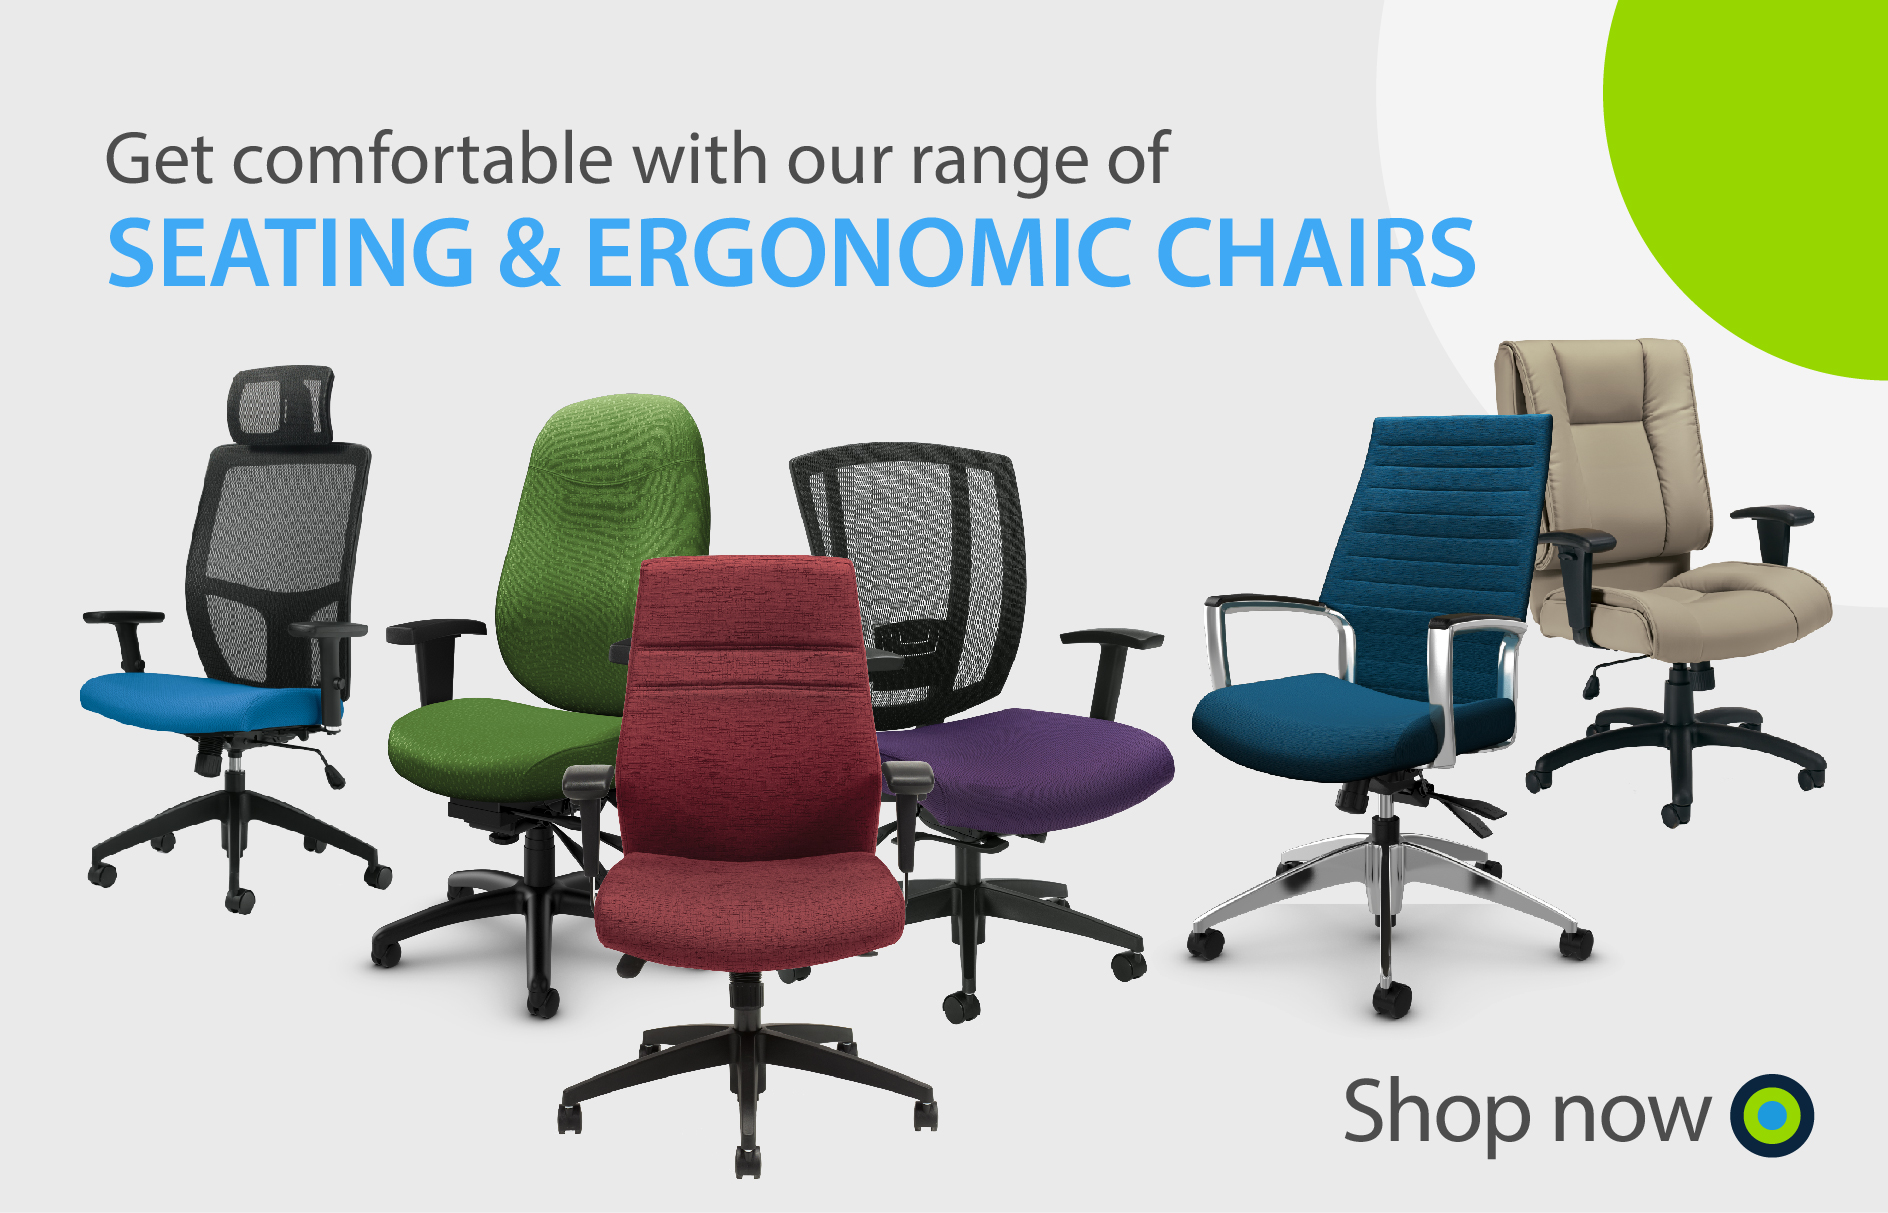 Office Central Seating and Ergonomic Chairs